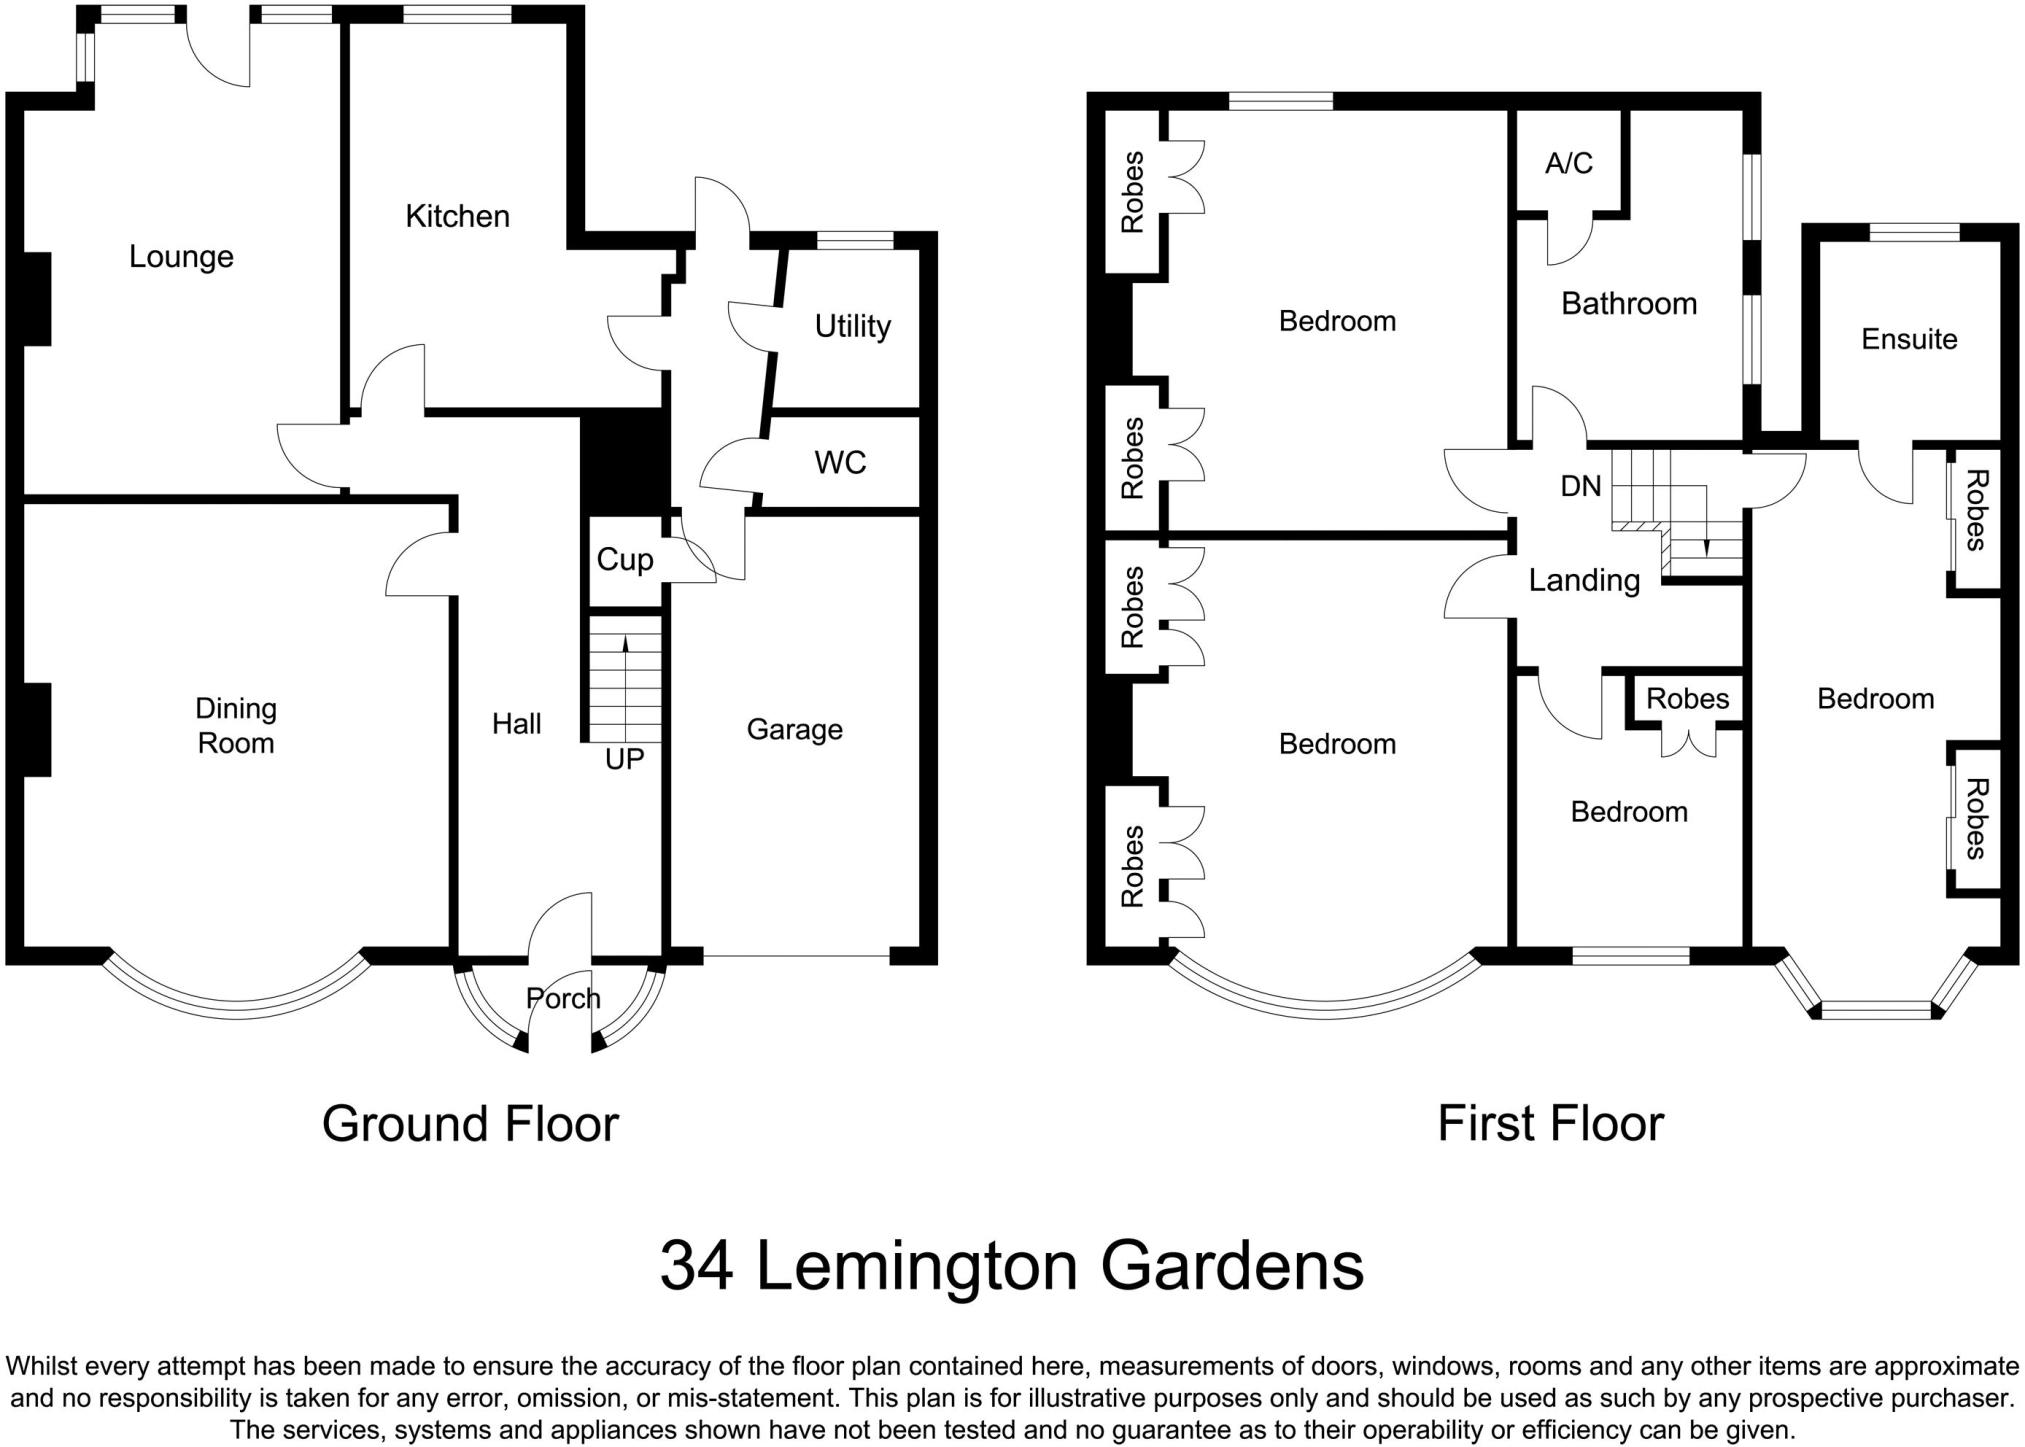 4 bedroom semi-detached house for sale in lemington gardens